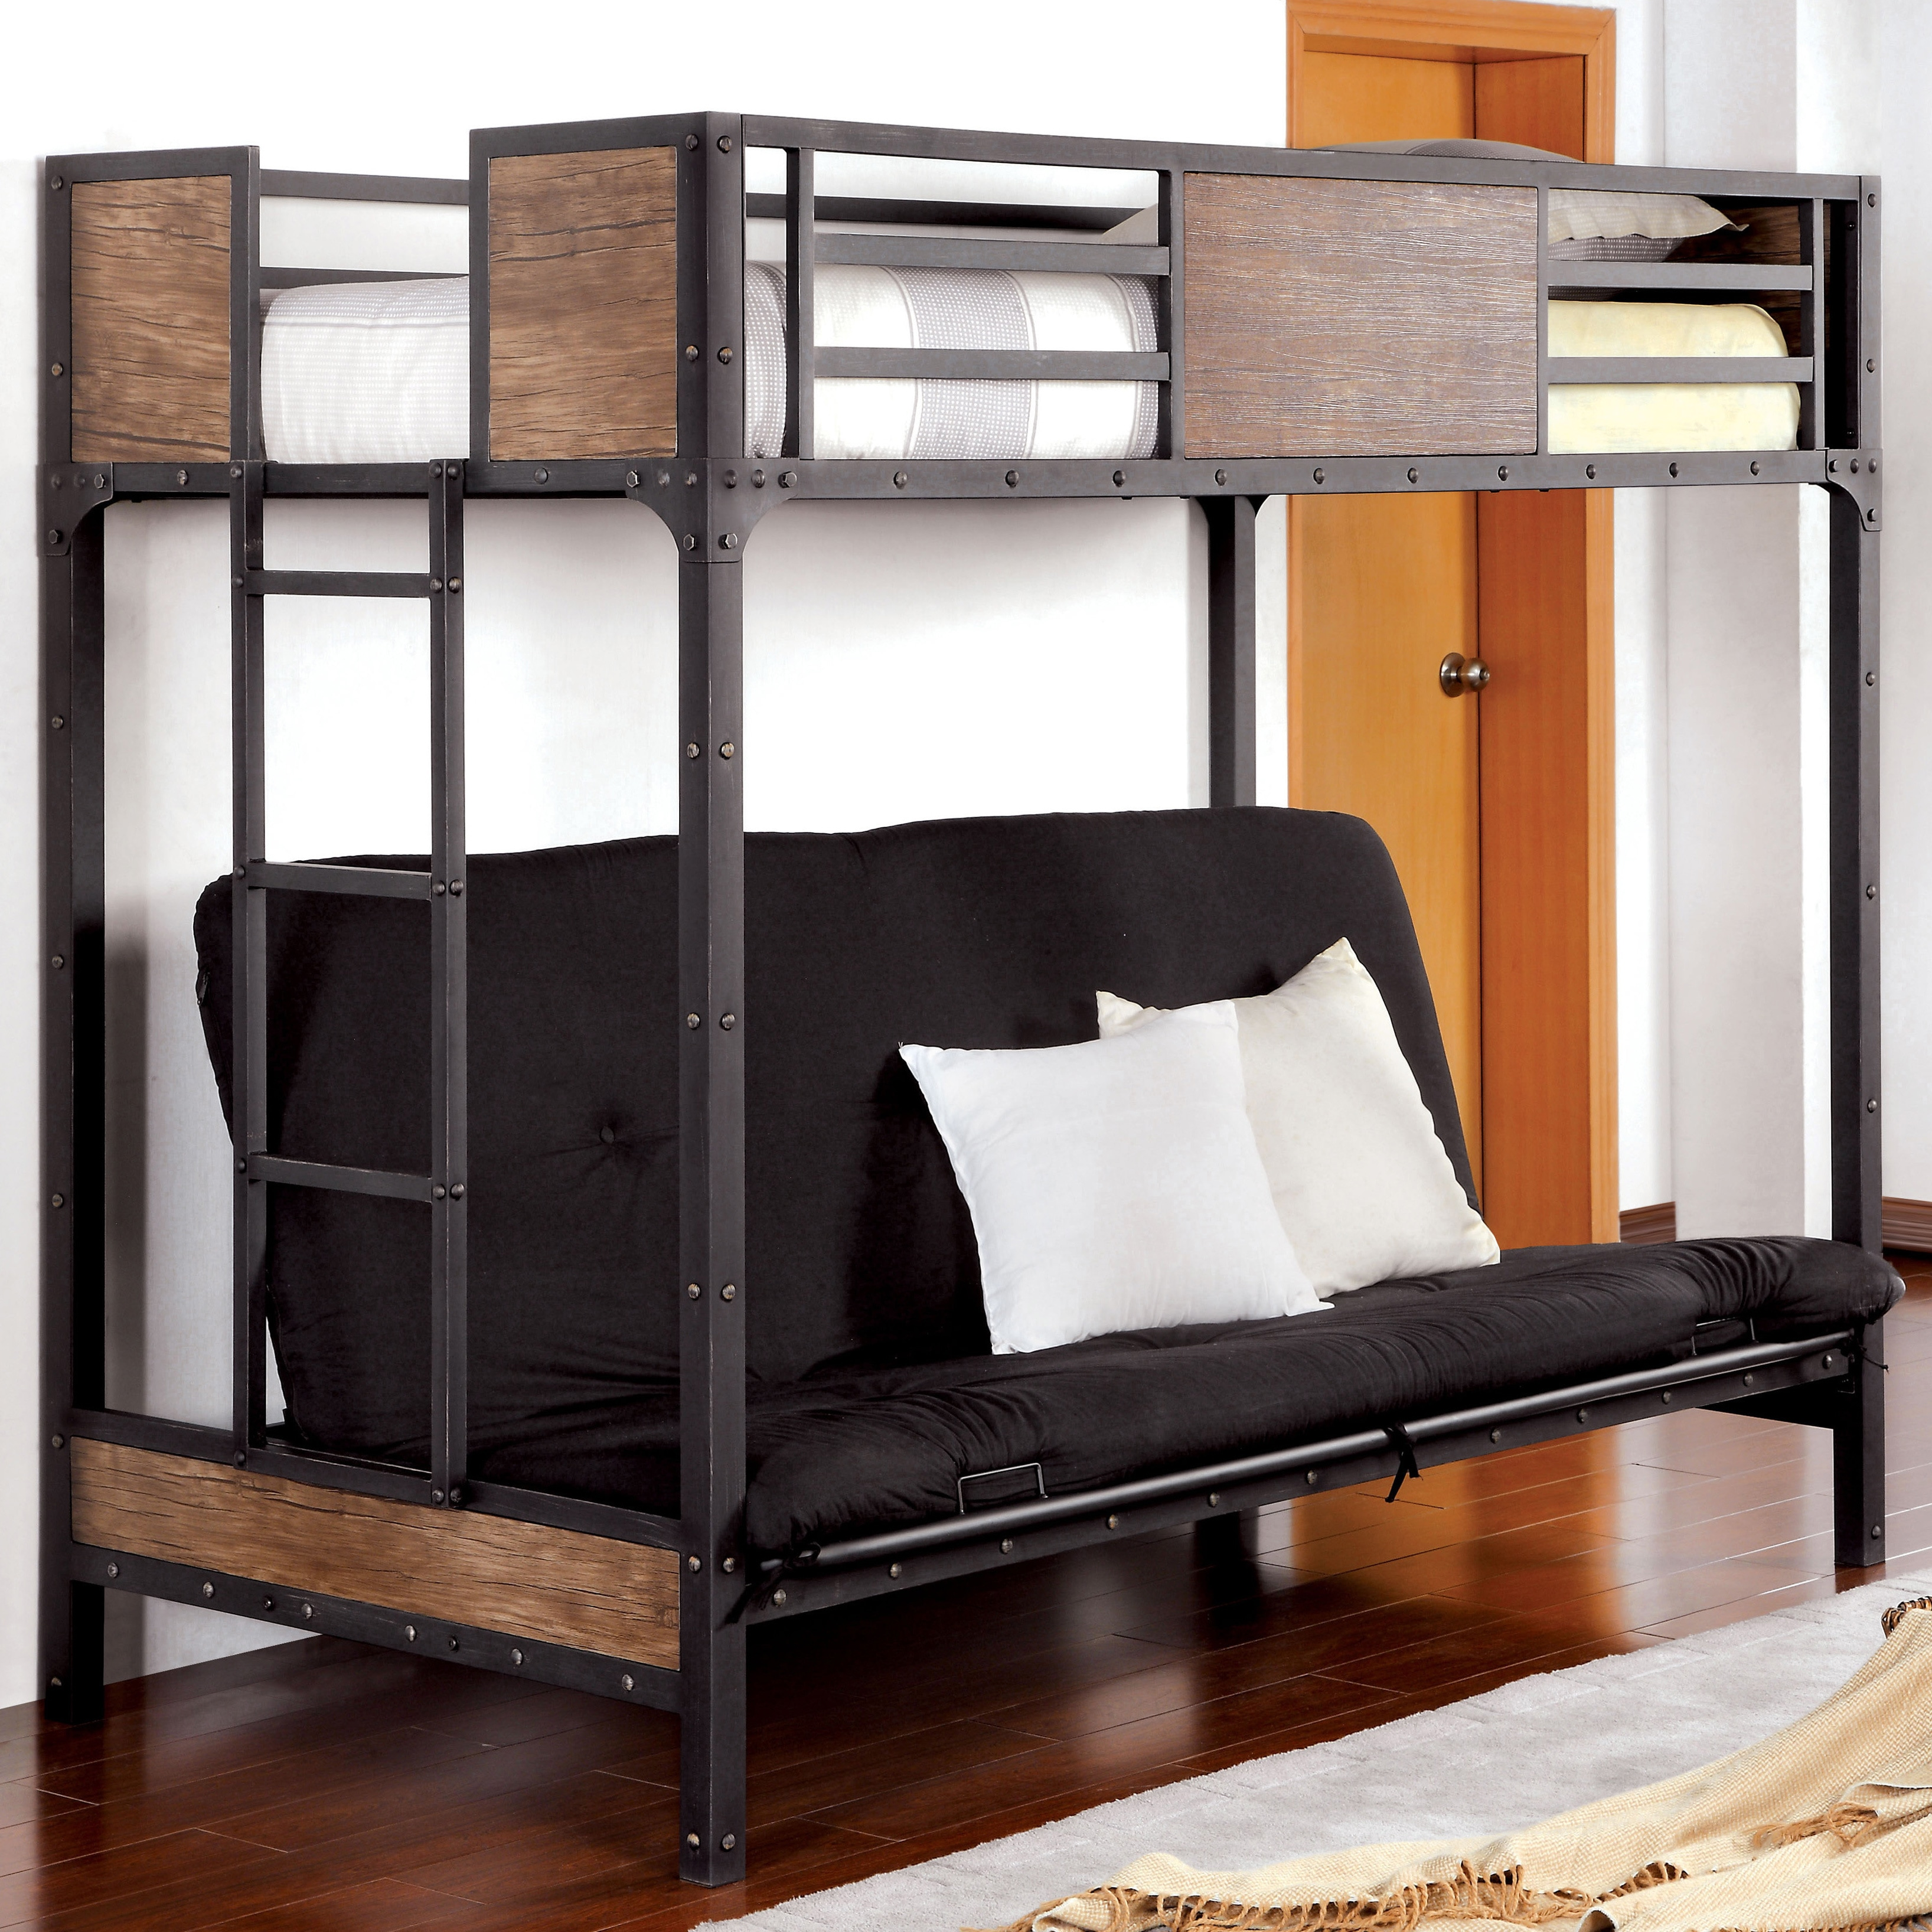 Furniture of America Markain Industrial Metal Loft Bed wi...